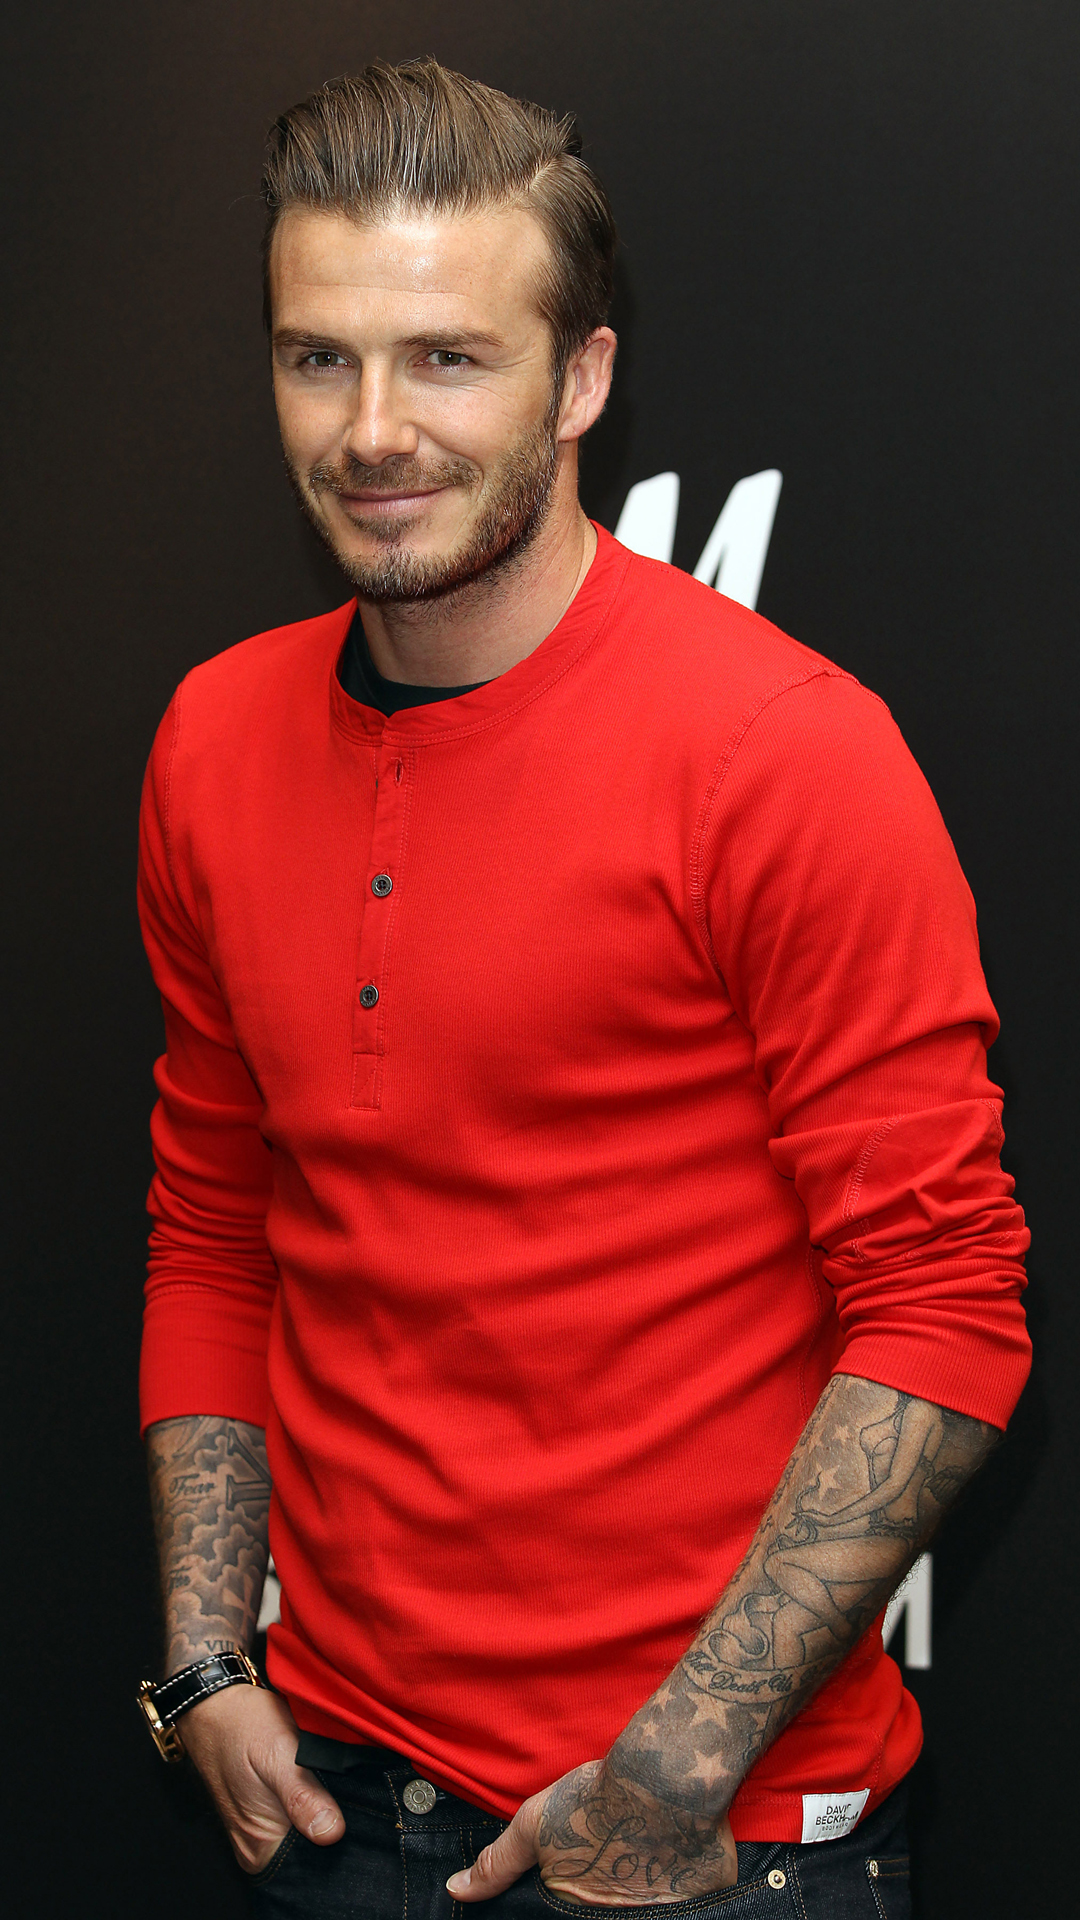 David Beckham Best Htc One Wallpapers Free And Easy To